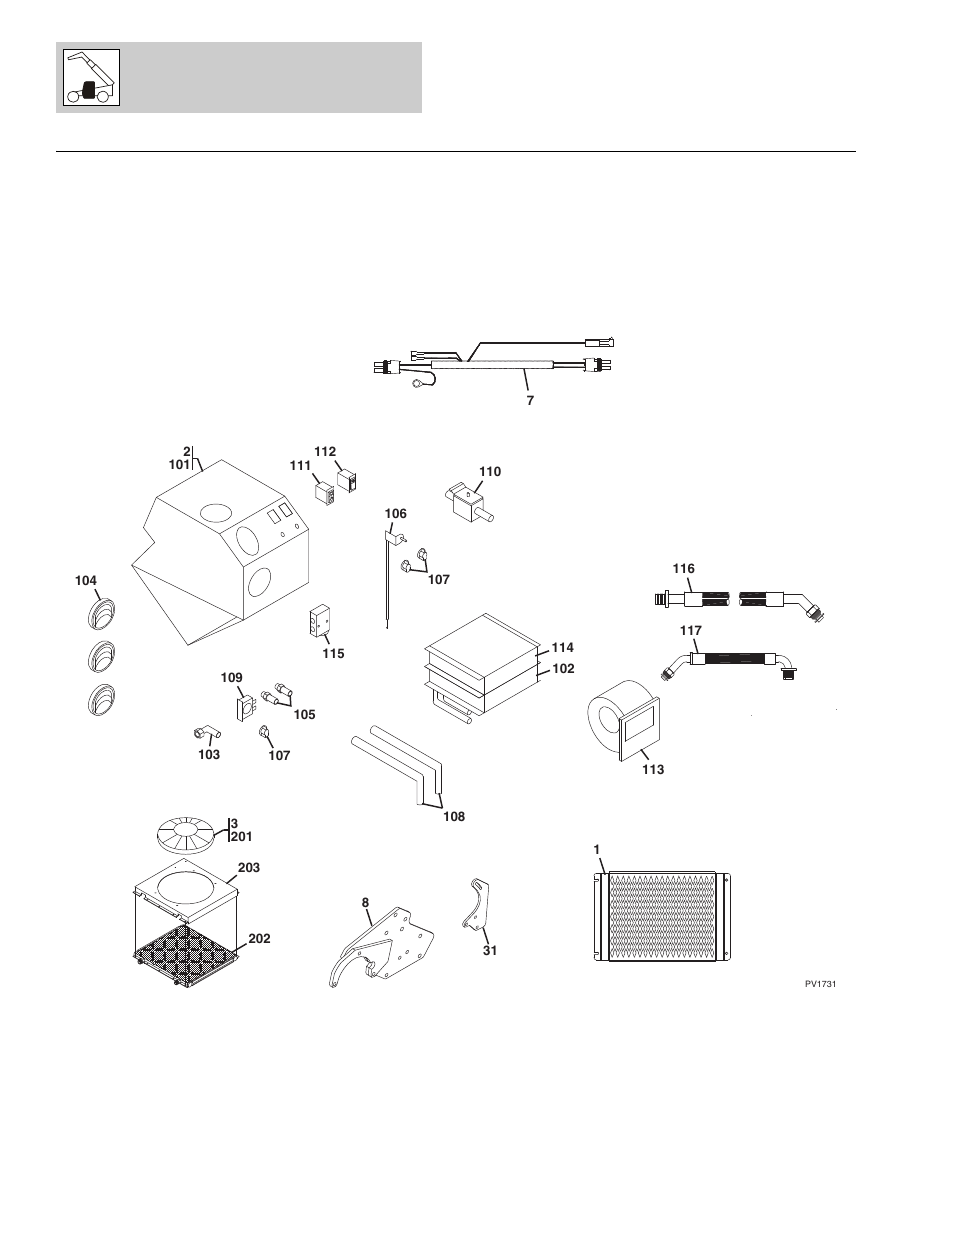 Figure 6-10 heater & air conditioning system, Heater & air